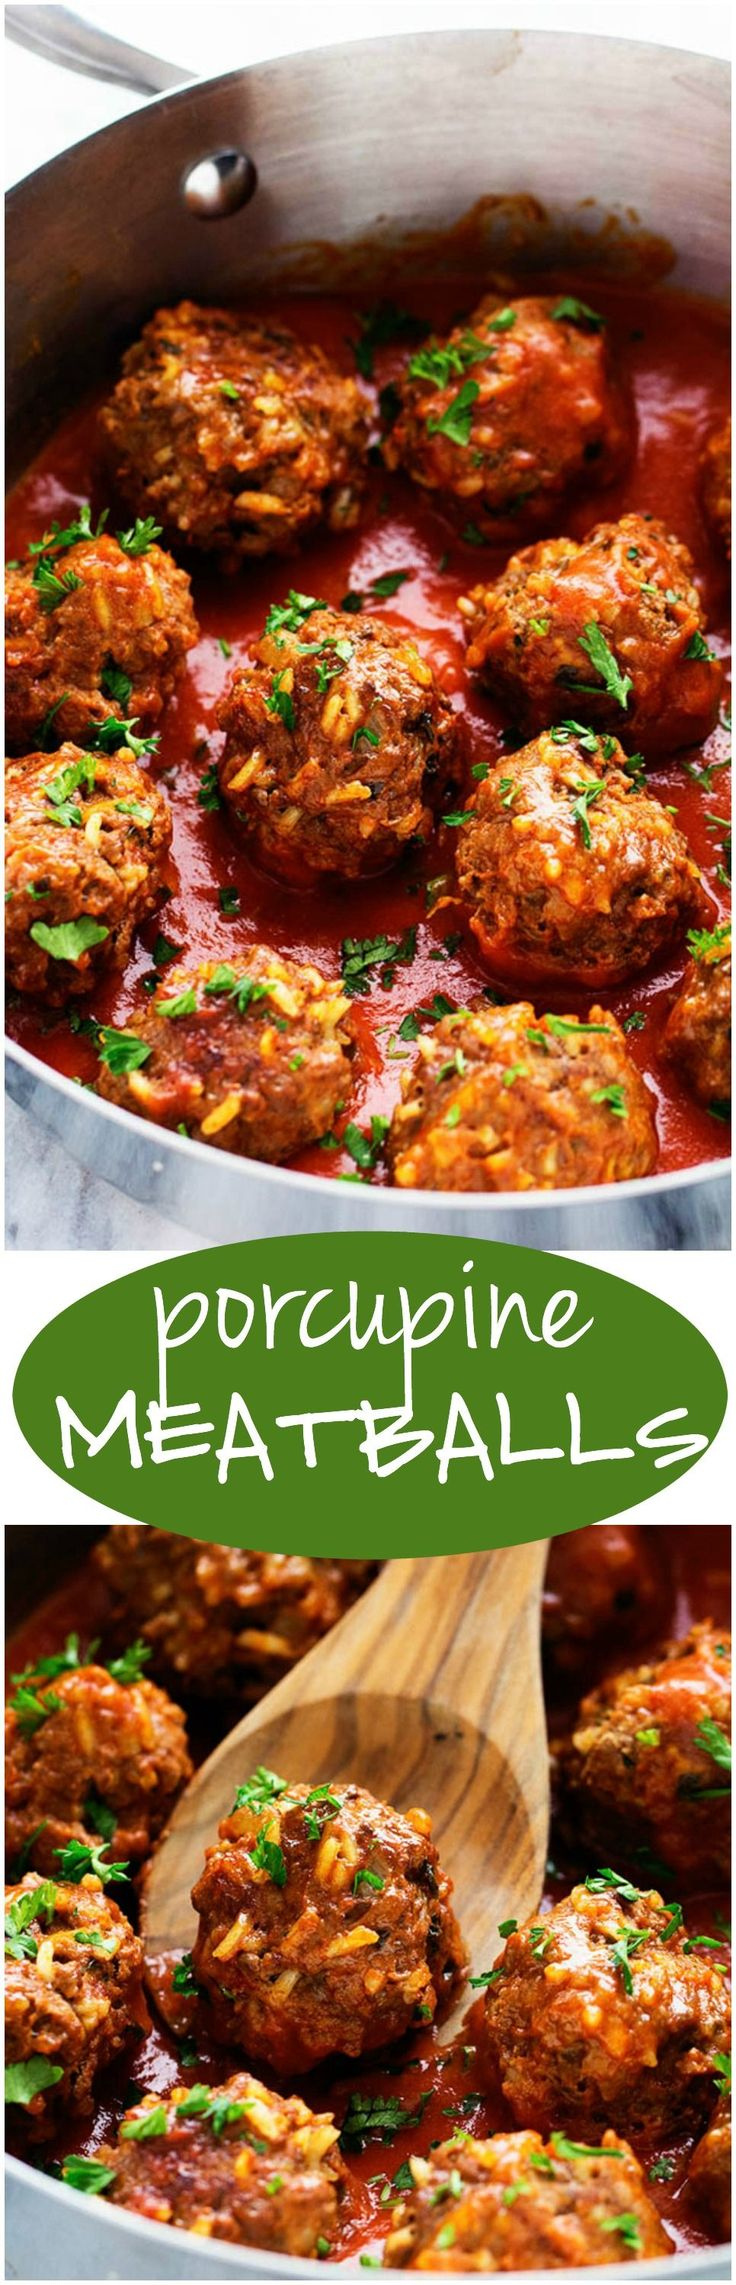 Hearty and well seasoned meatballs with rice that simmer in a rich tomato sauce. These are the BEST meatballs that you will make!